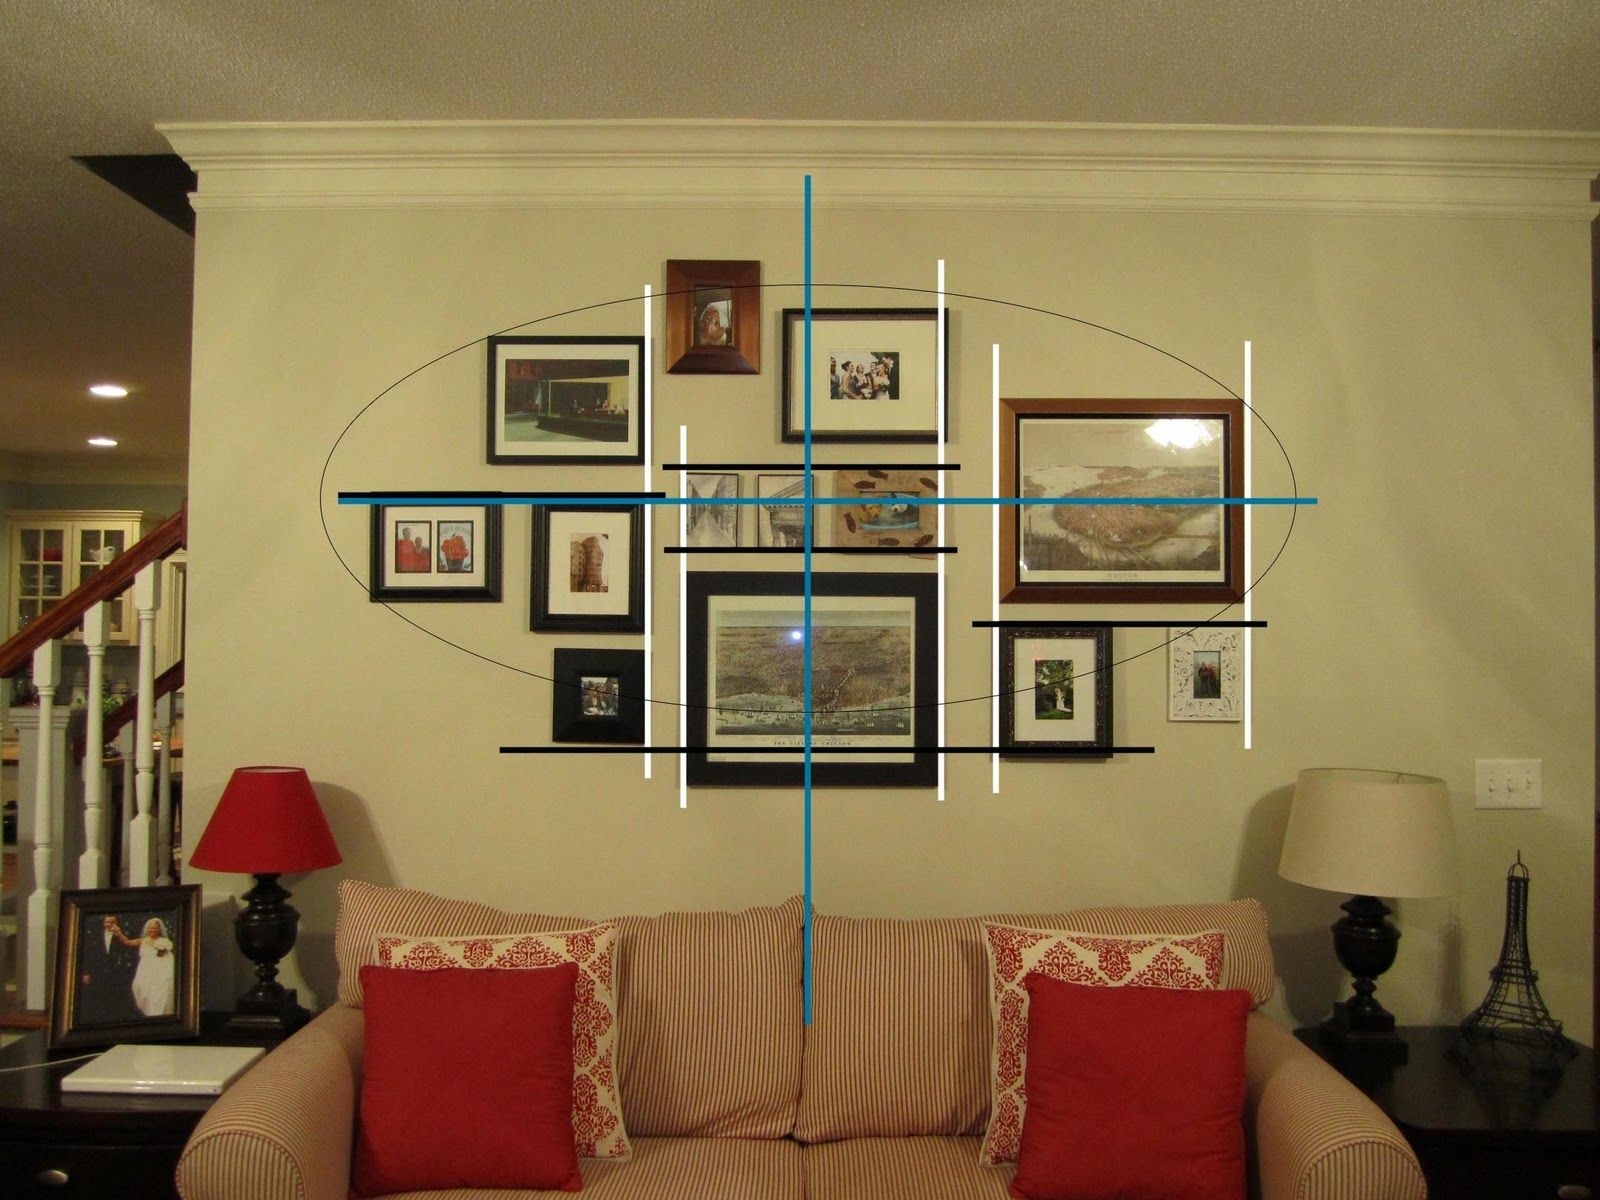 Wall Photo Collage Template This Photo Shows The Oval Superimposed